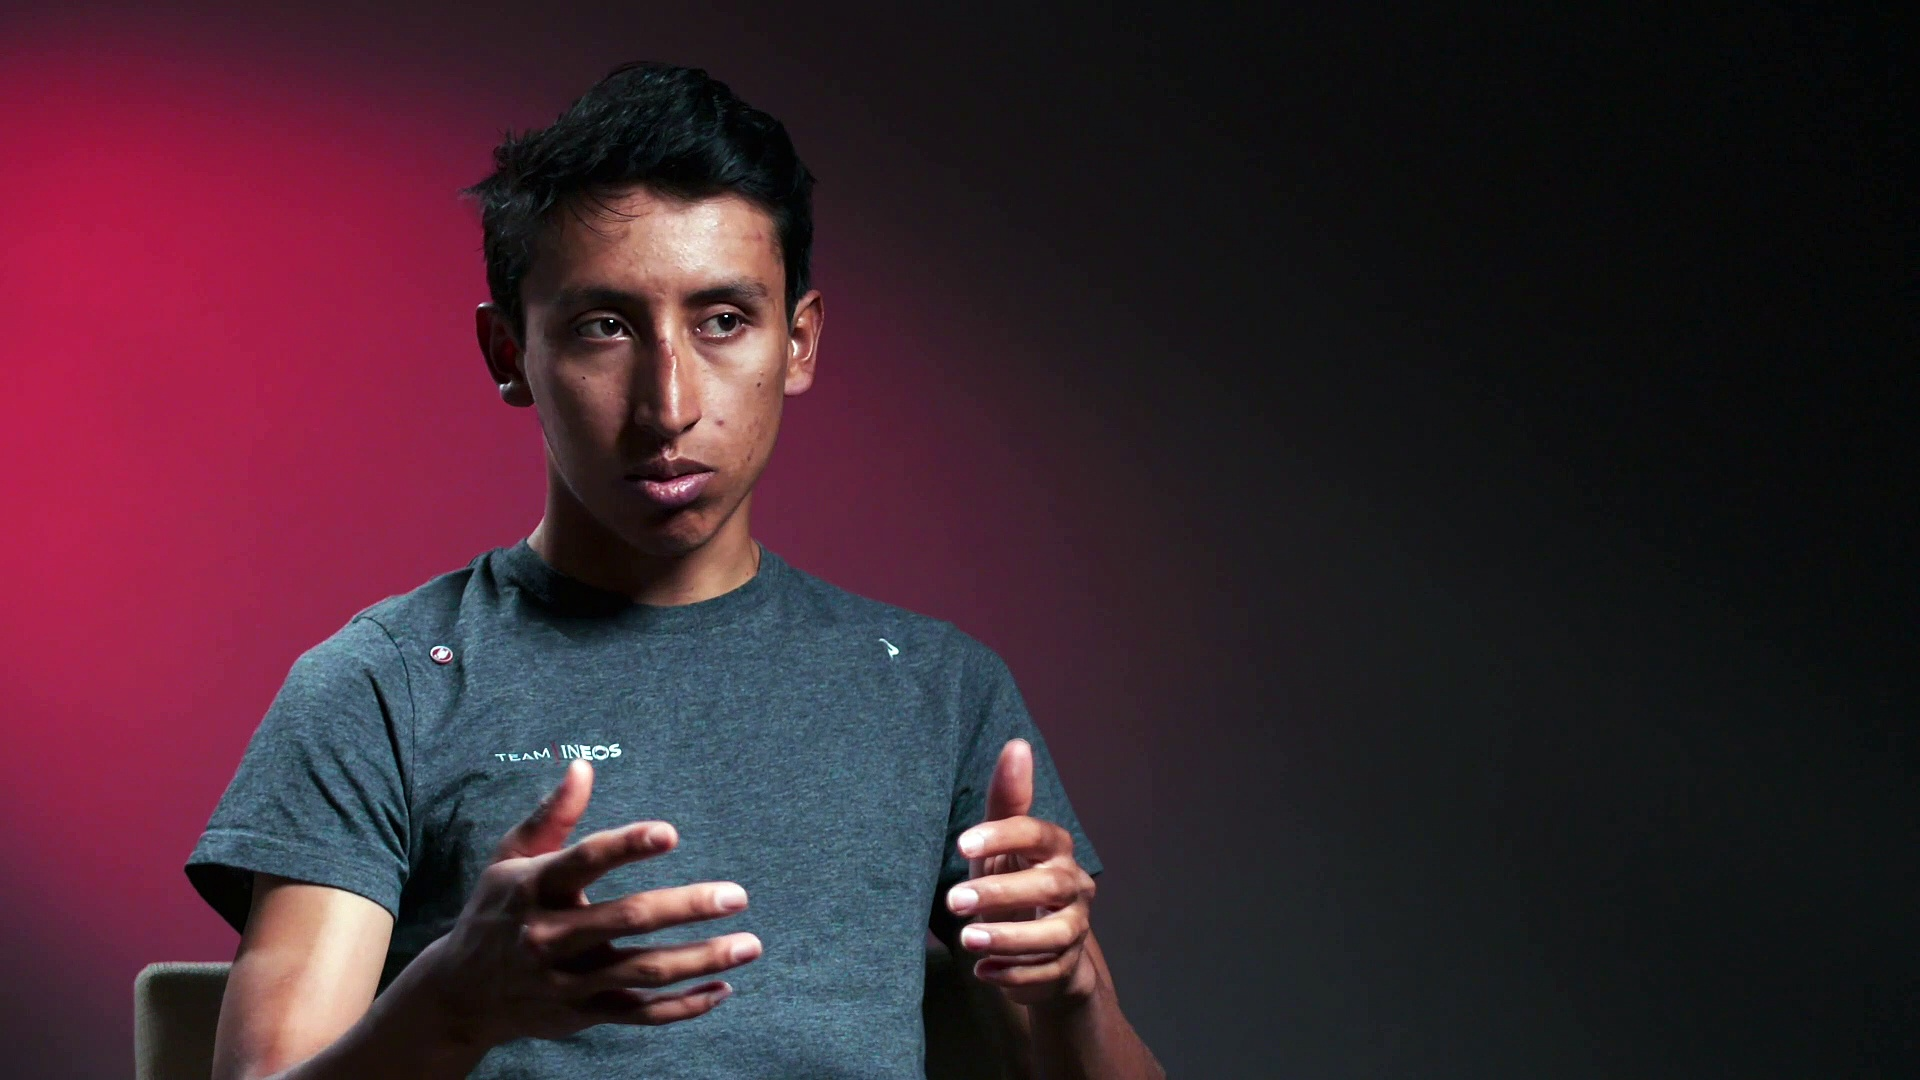 """Egan Bernal : """"It will be something special to have the number one in the Tour de France and to try to go for the GC again"""""""